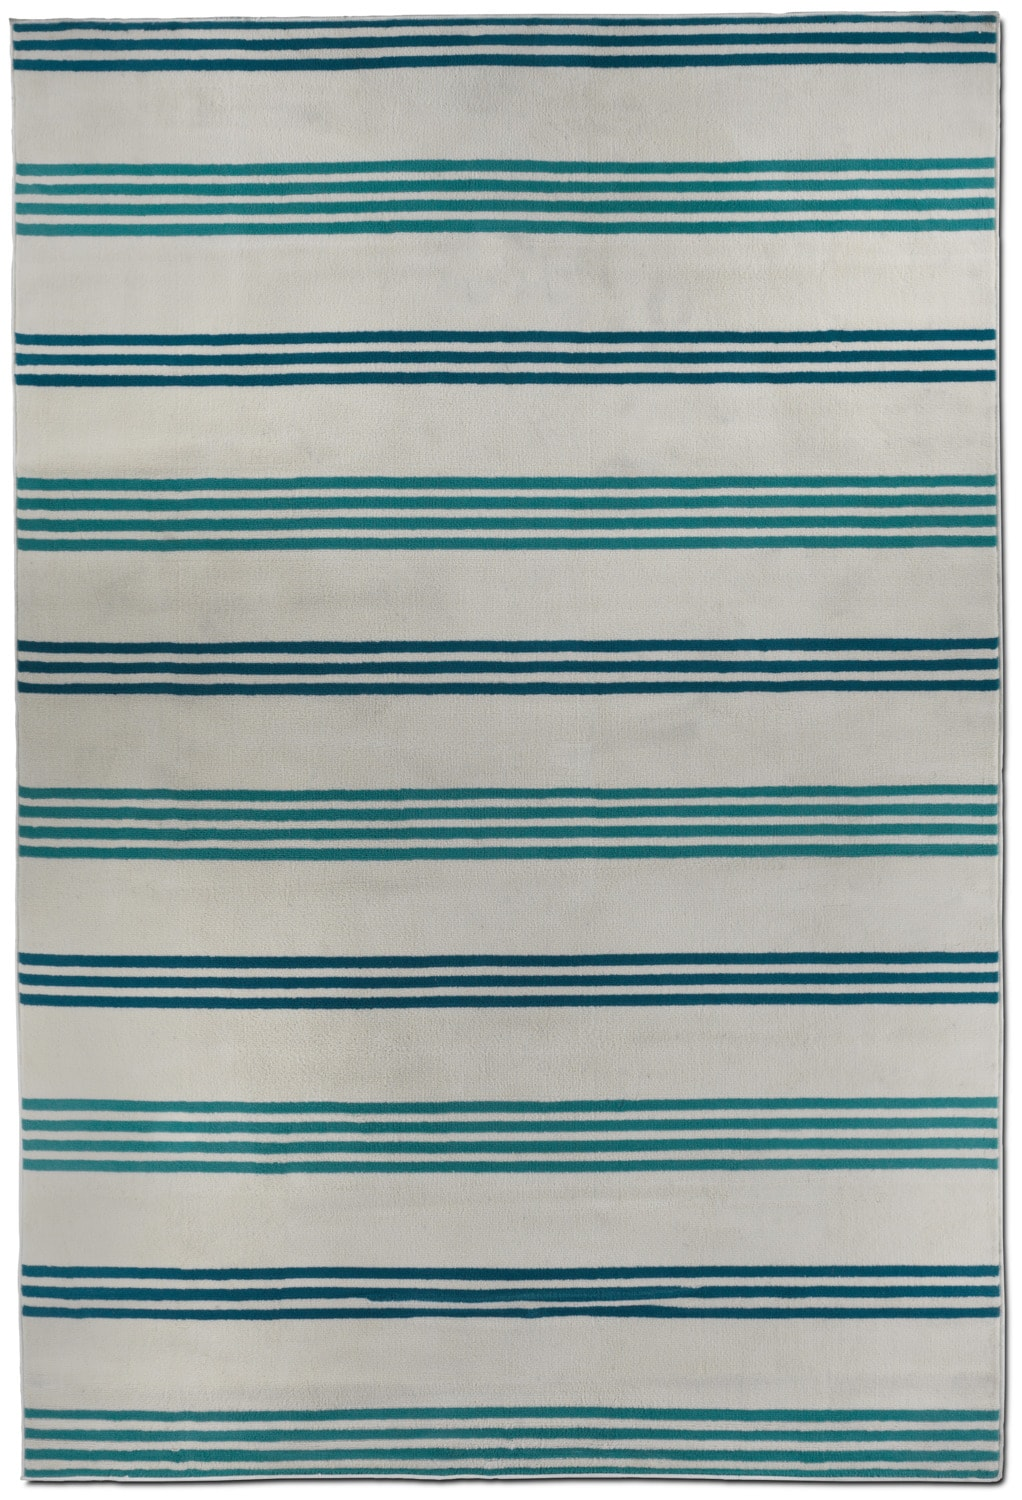 Glendale Outdoor 7' X 9' Area Rug - Blue Stripe